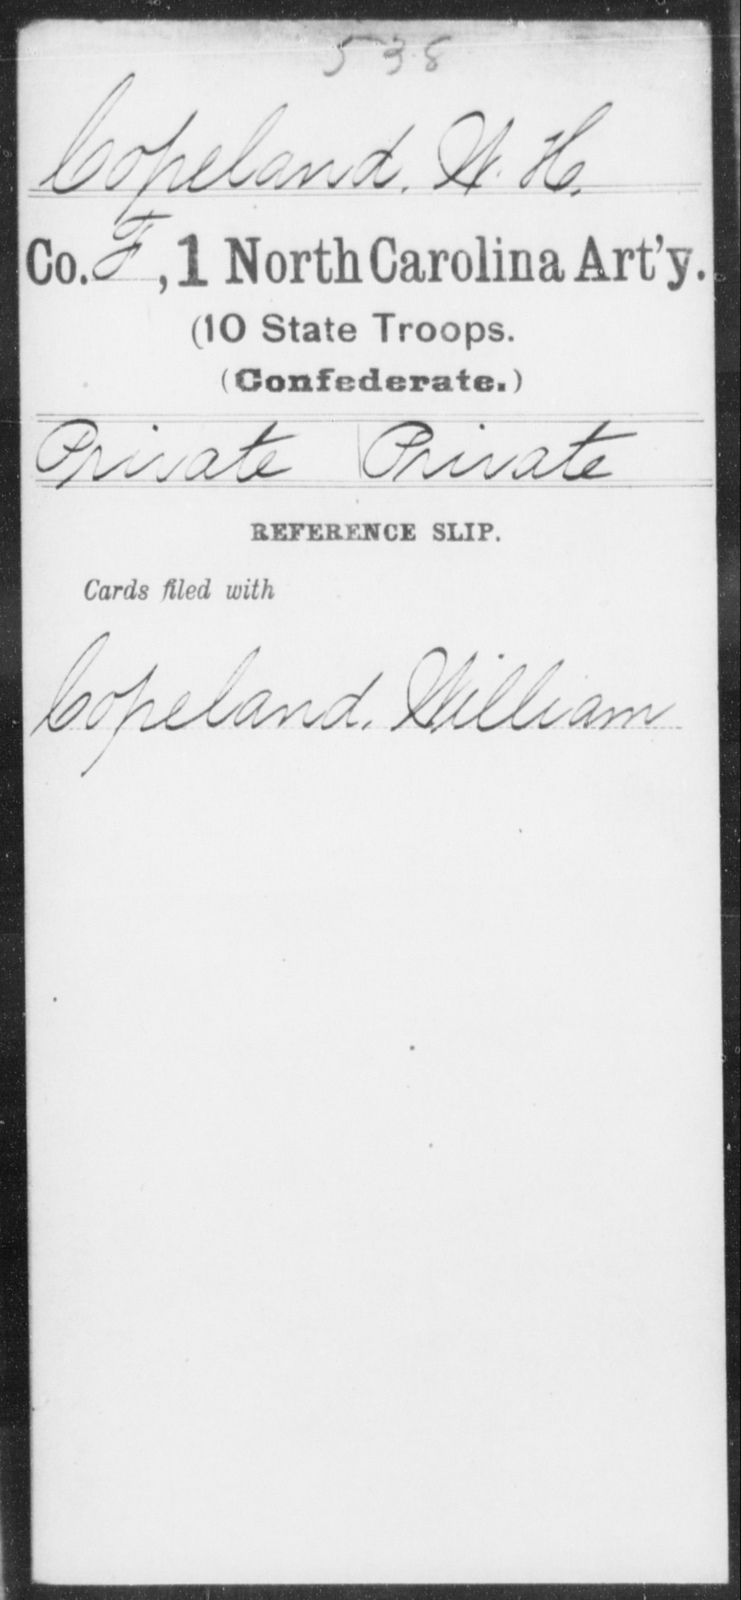 Copeland, W H - First Artillery (10th State Troops)